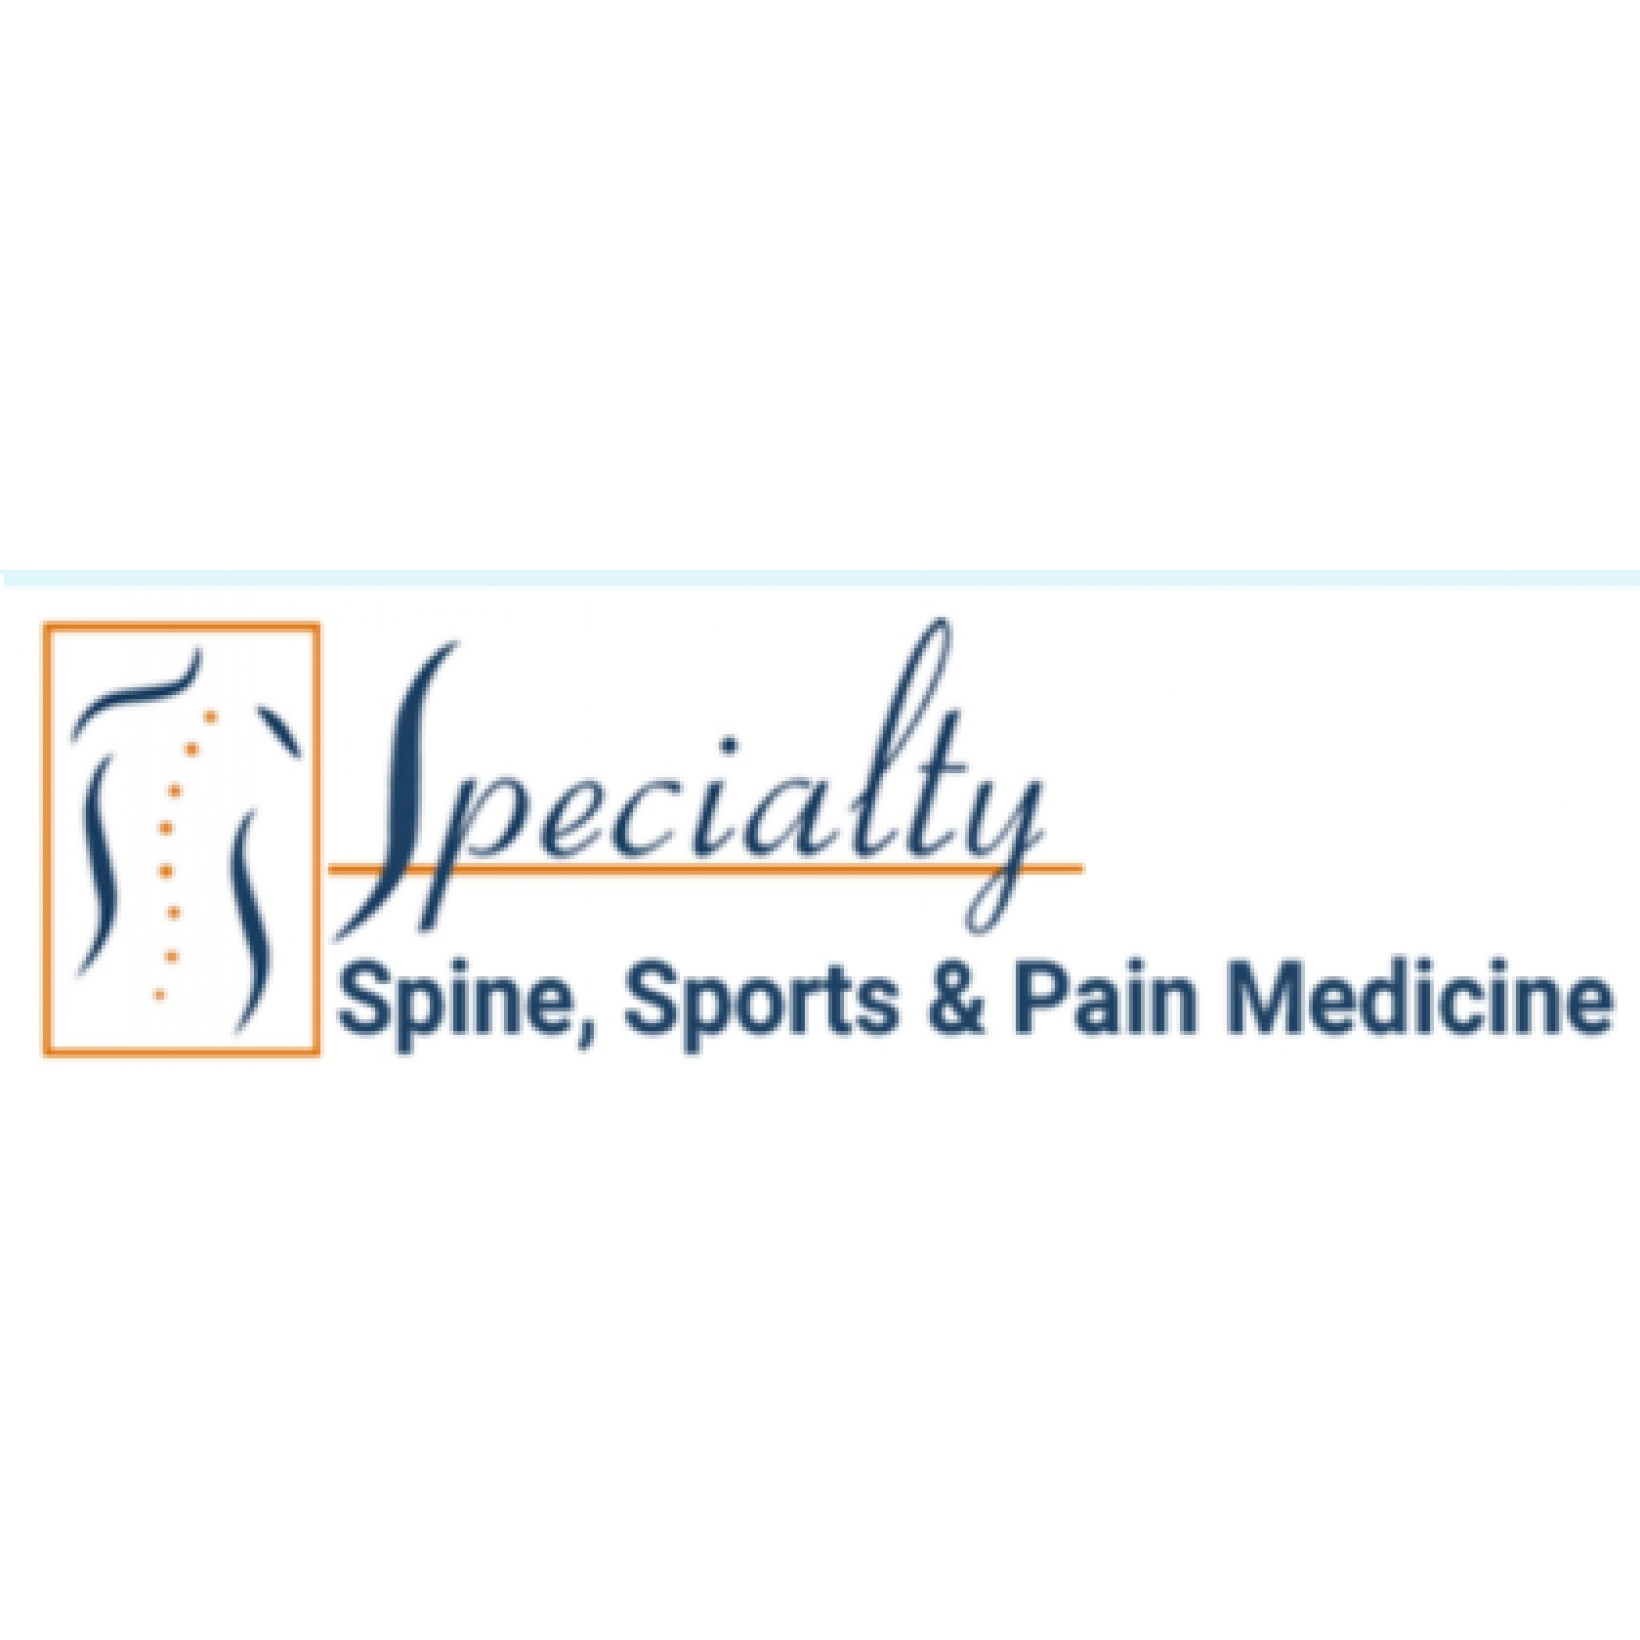 NERA Spine, Sports, and Pain Medicine